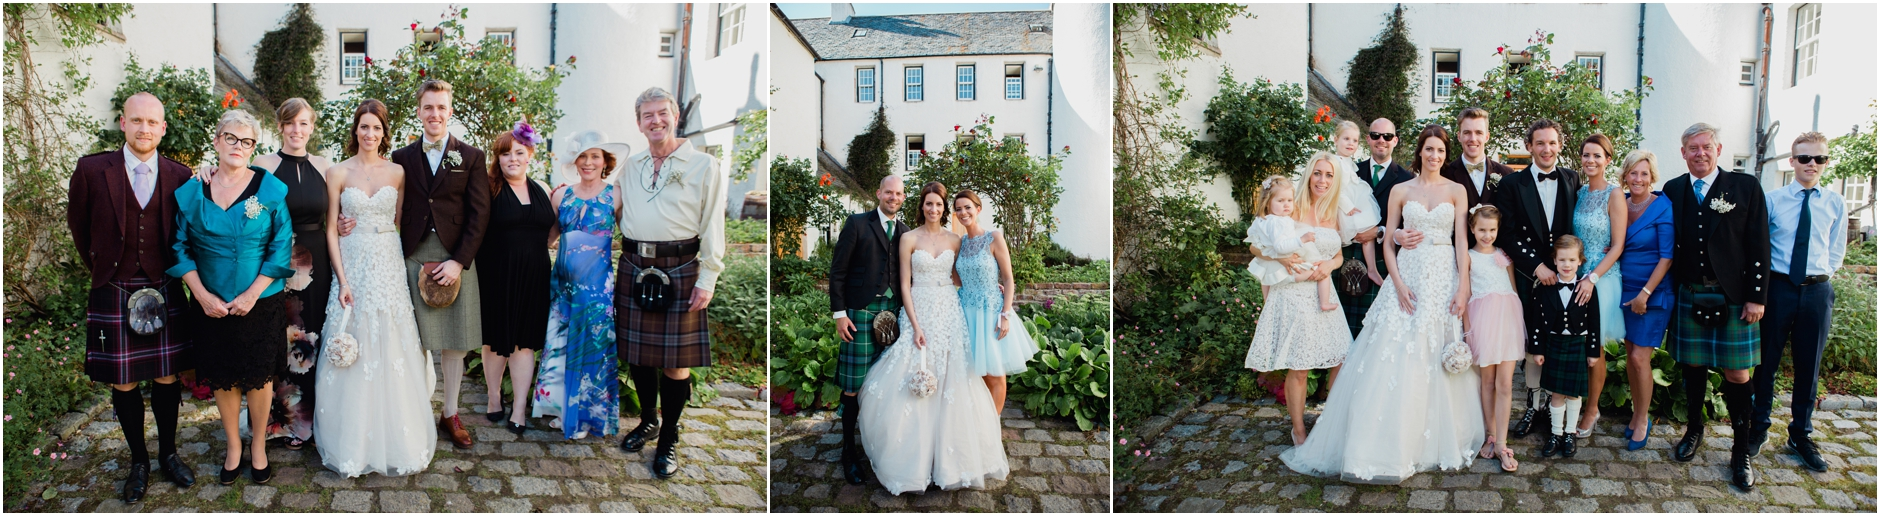 Creative and elegant wedding at Logie Country House ...